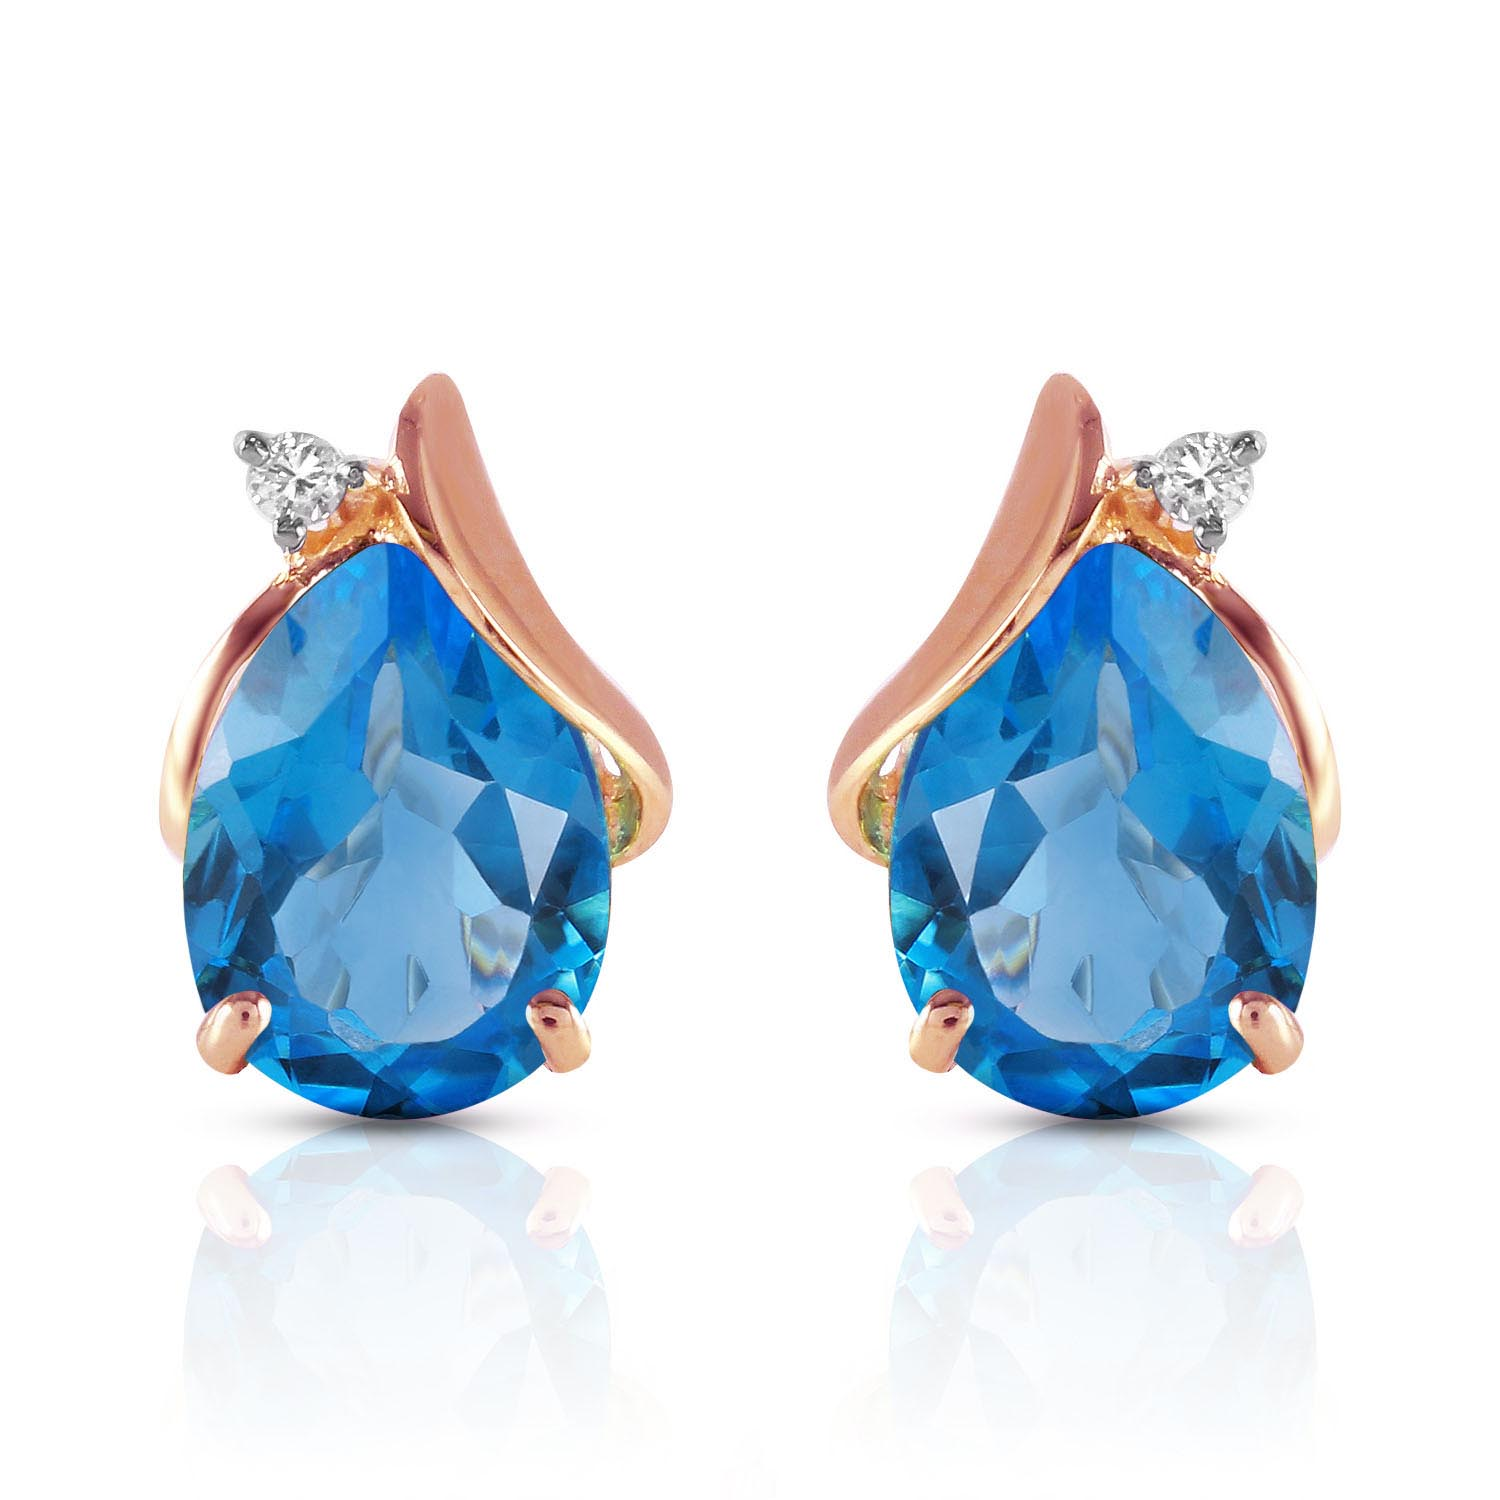 Blue Topaz and Diamond Stud Earrings 5.0ctw in 14K Rose Gold